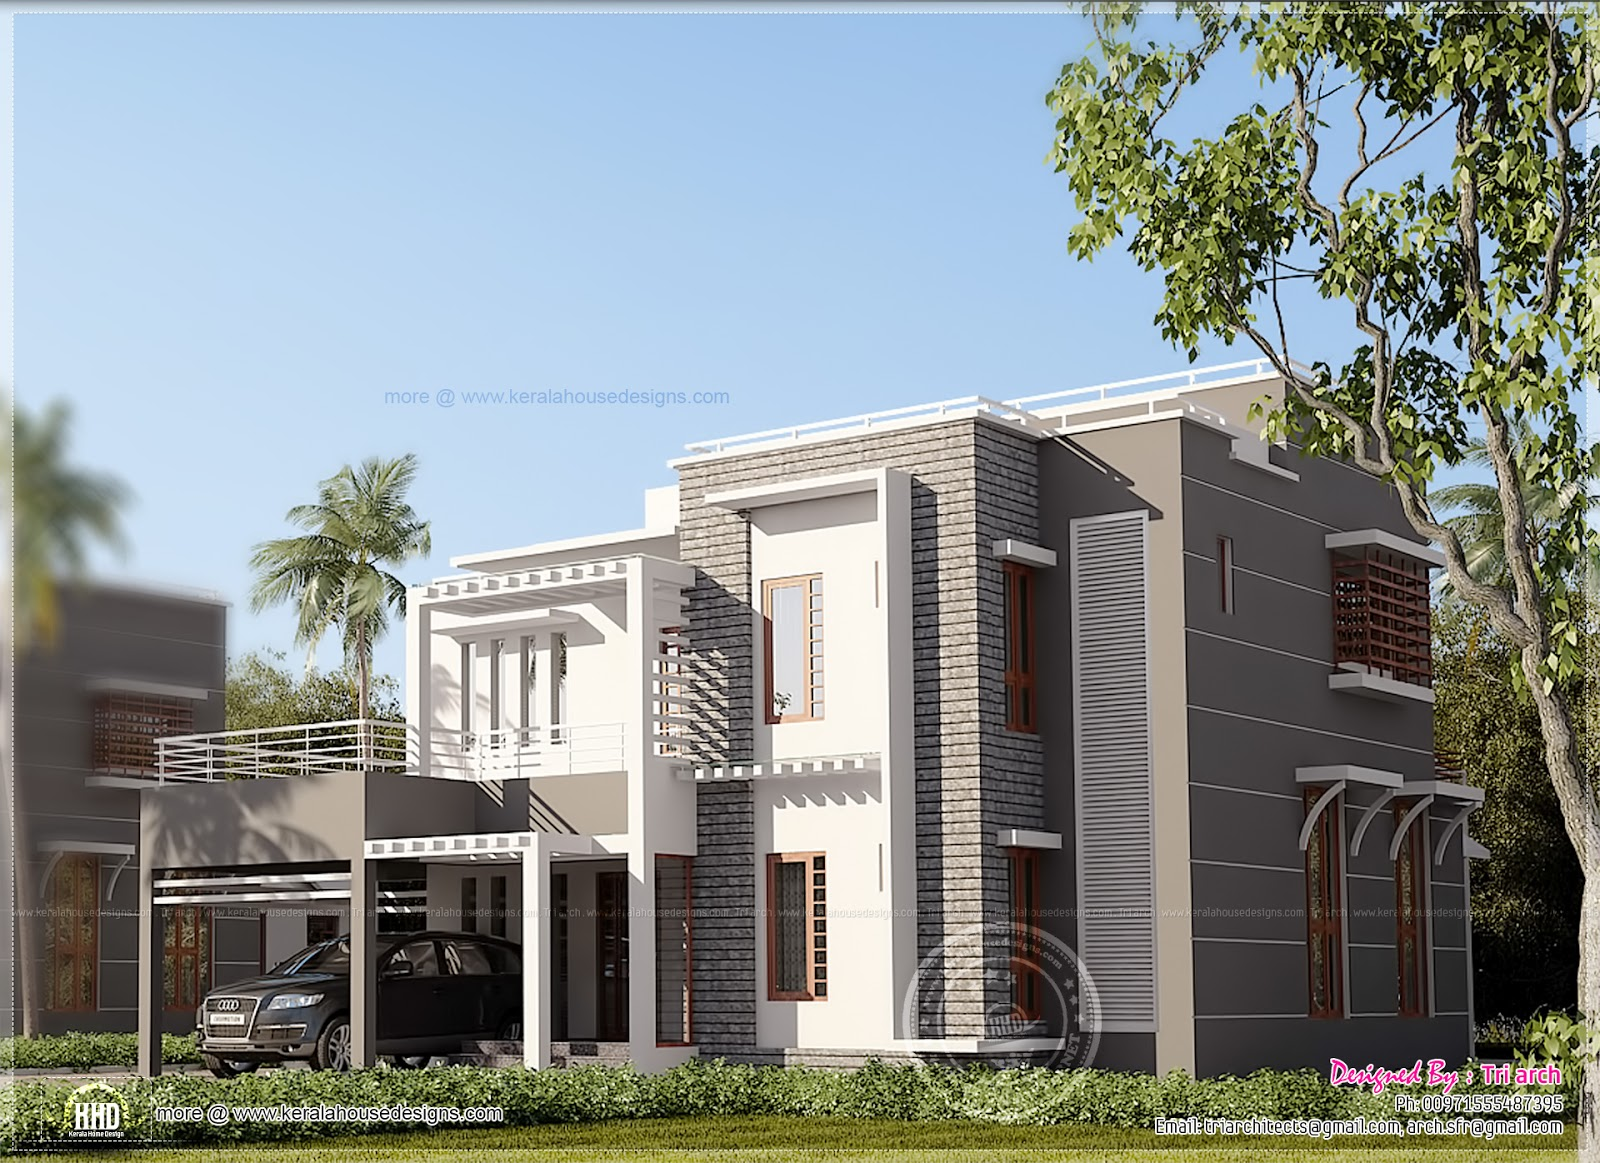 Contemporary home design in kerala kerala home design and floor plans - Contemporary house designs ...